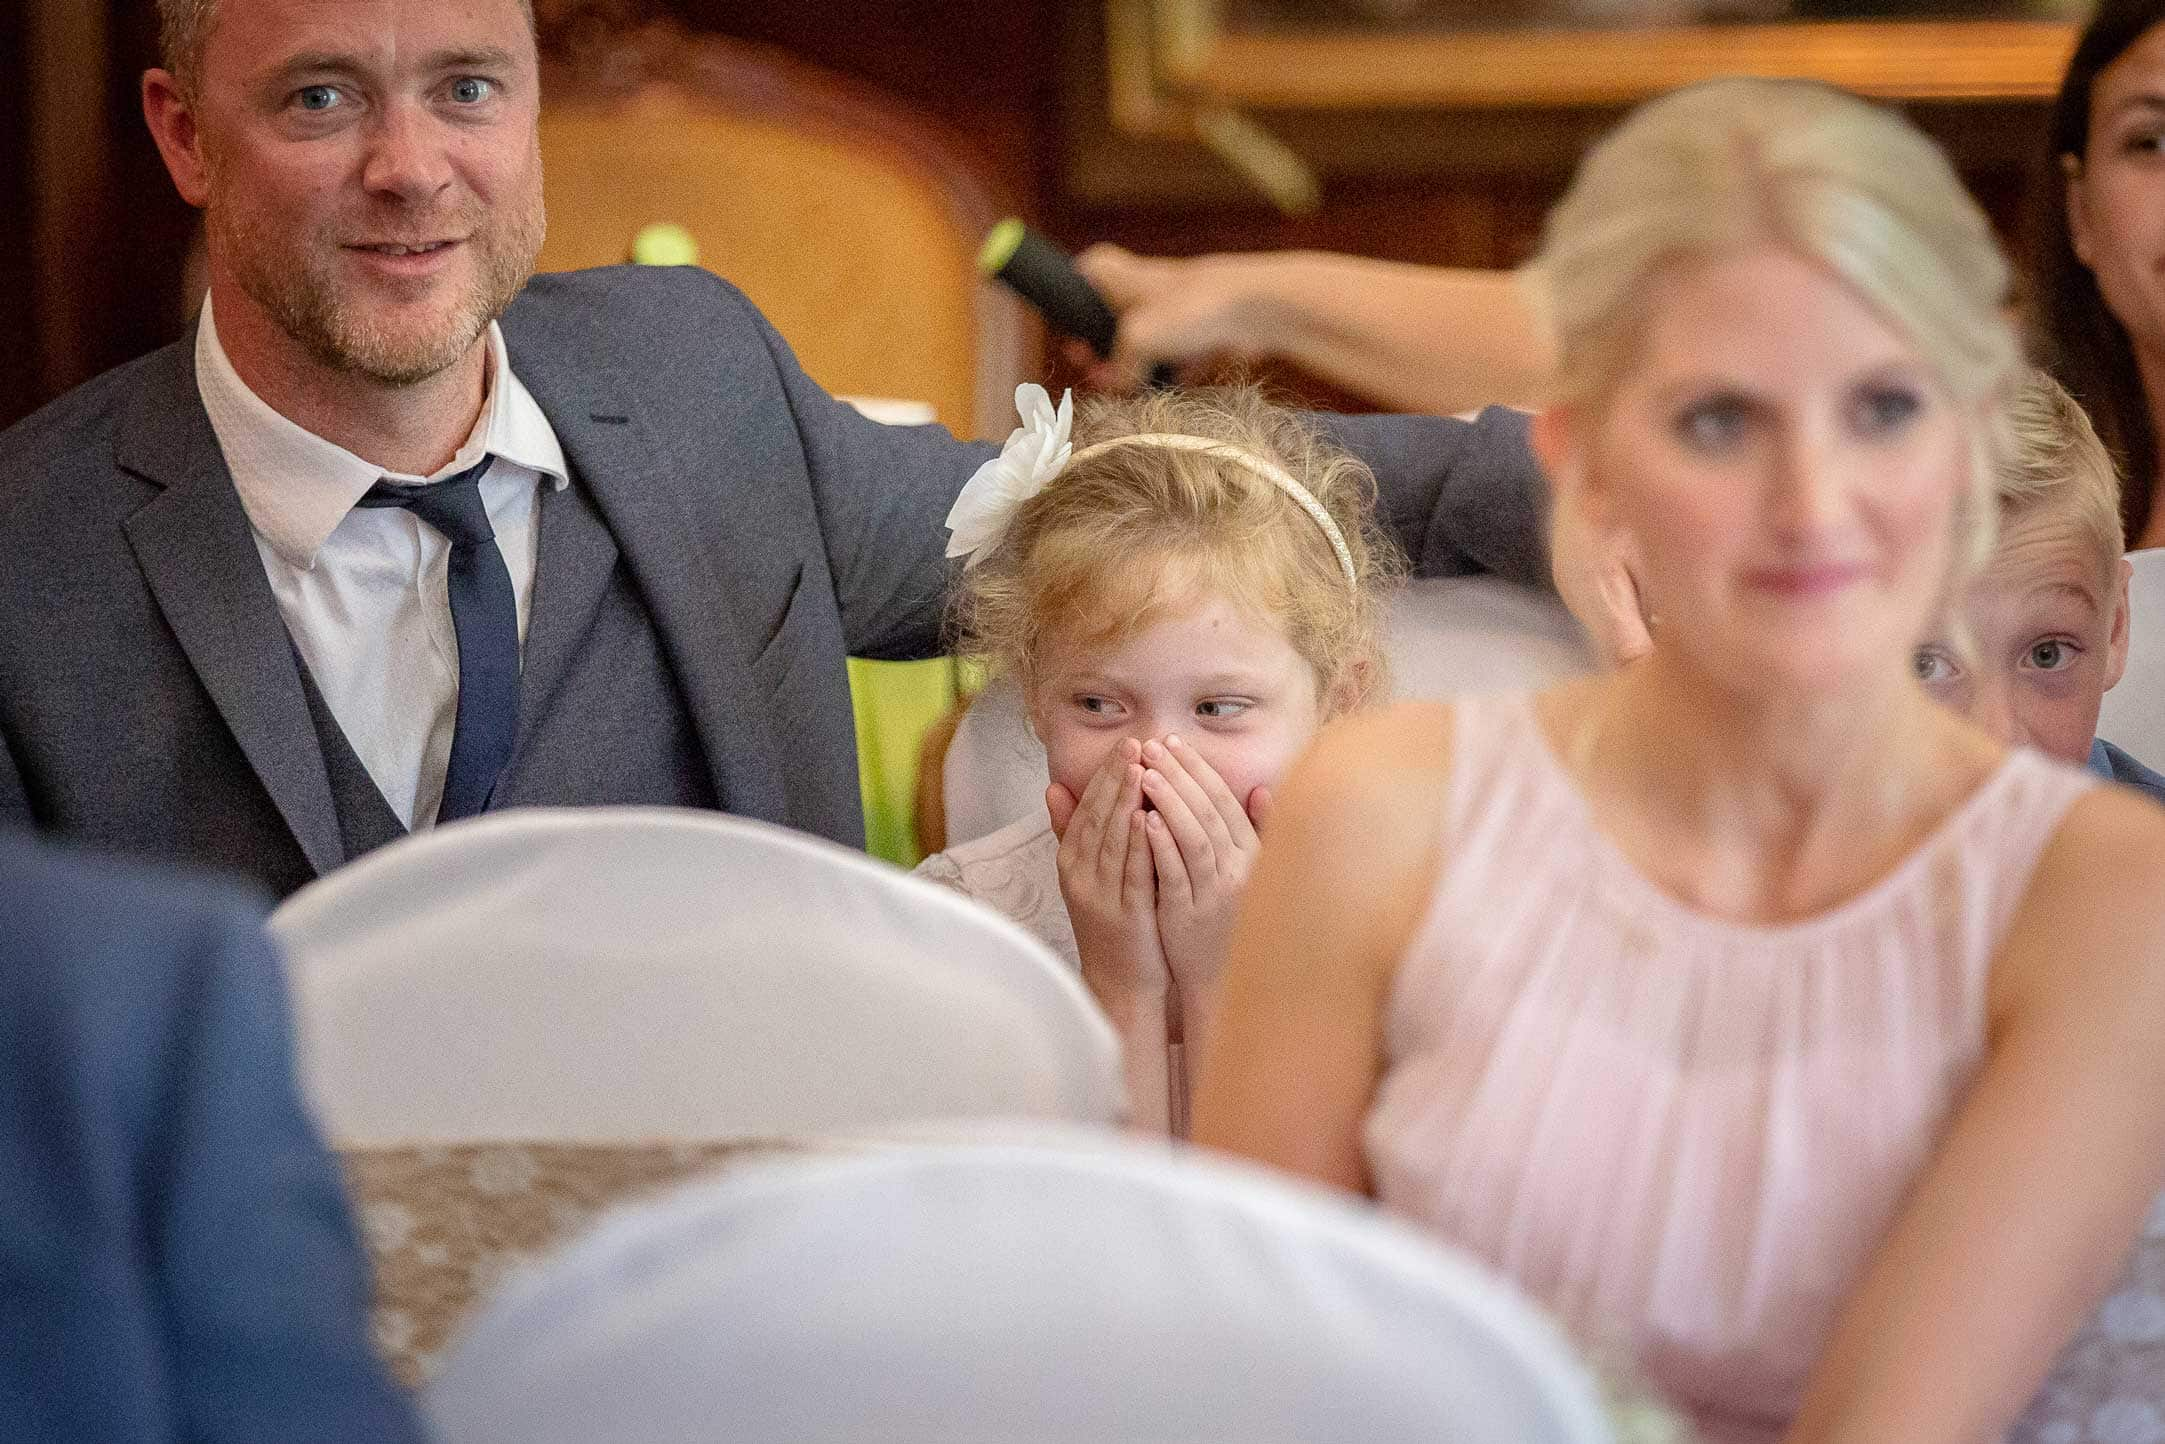 photo of a little girl laughing during a wedding ceremony at Ellingham hall